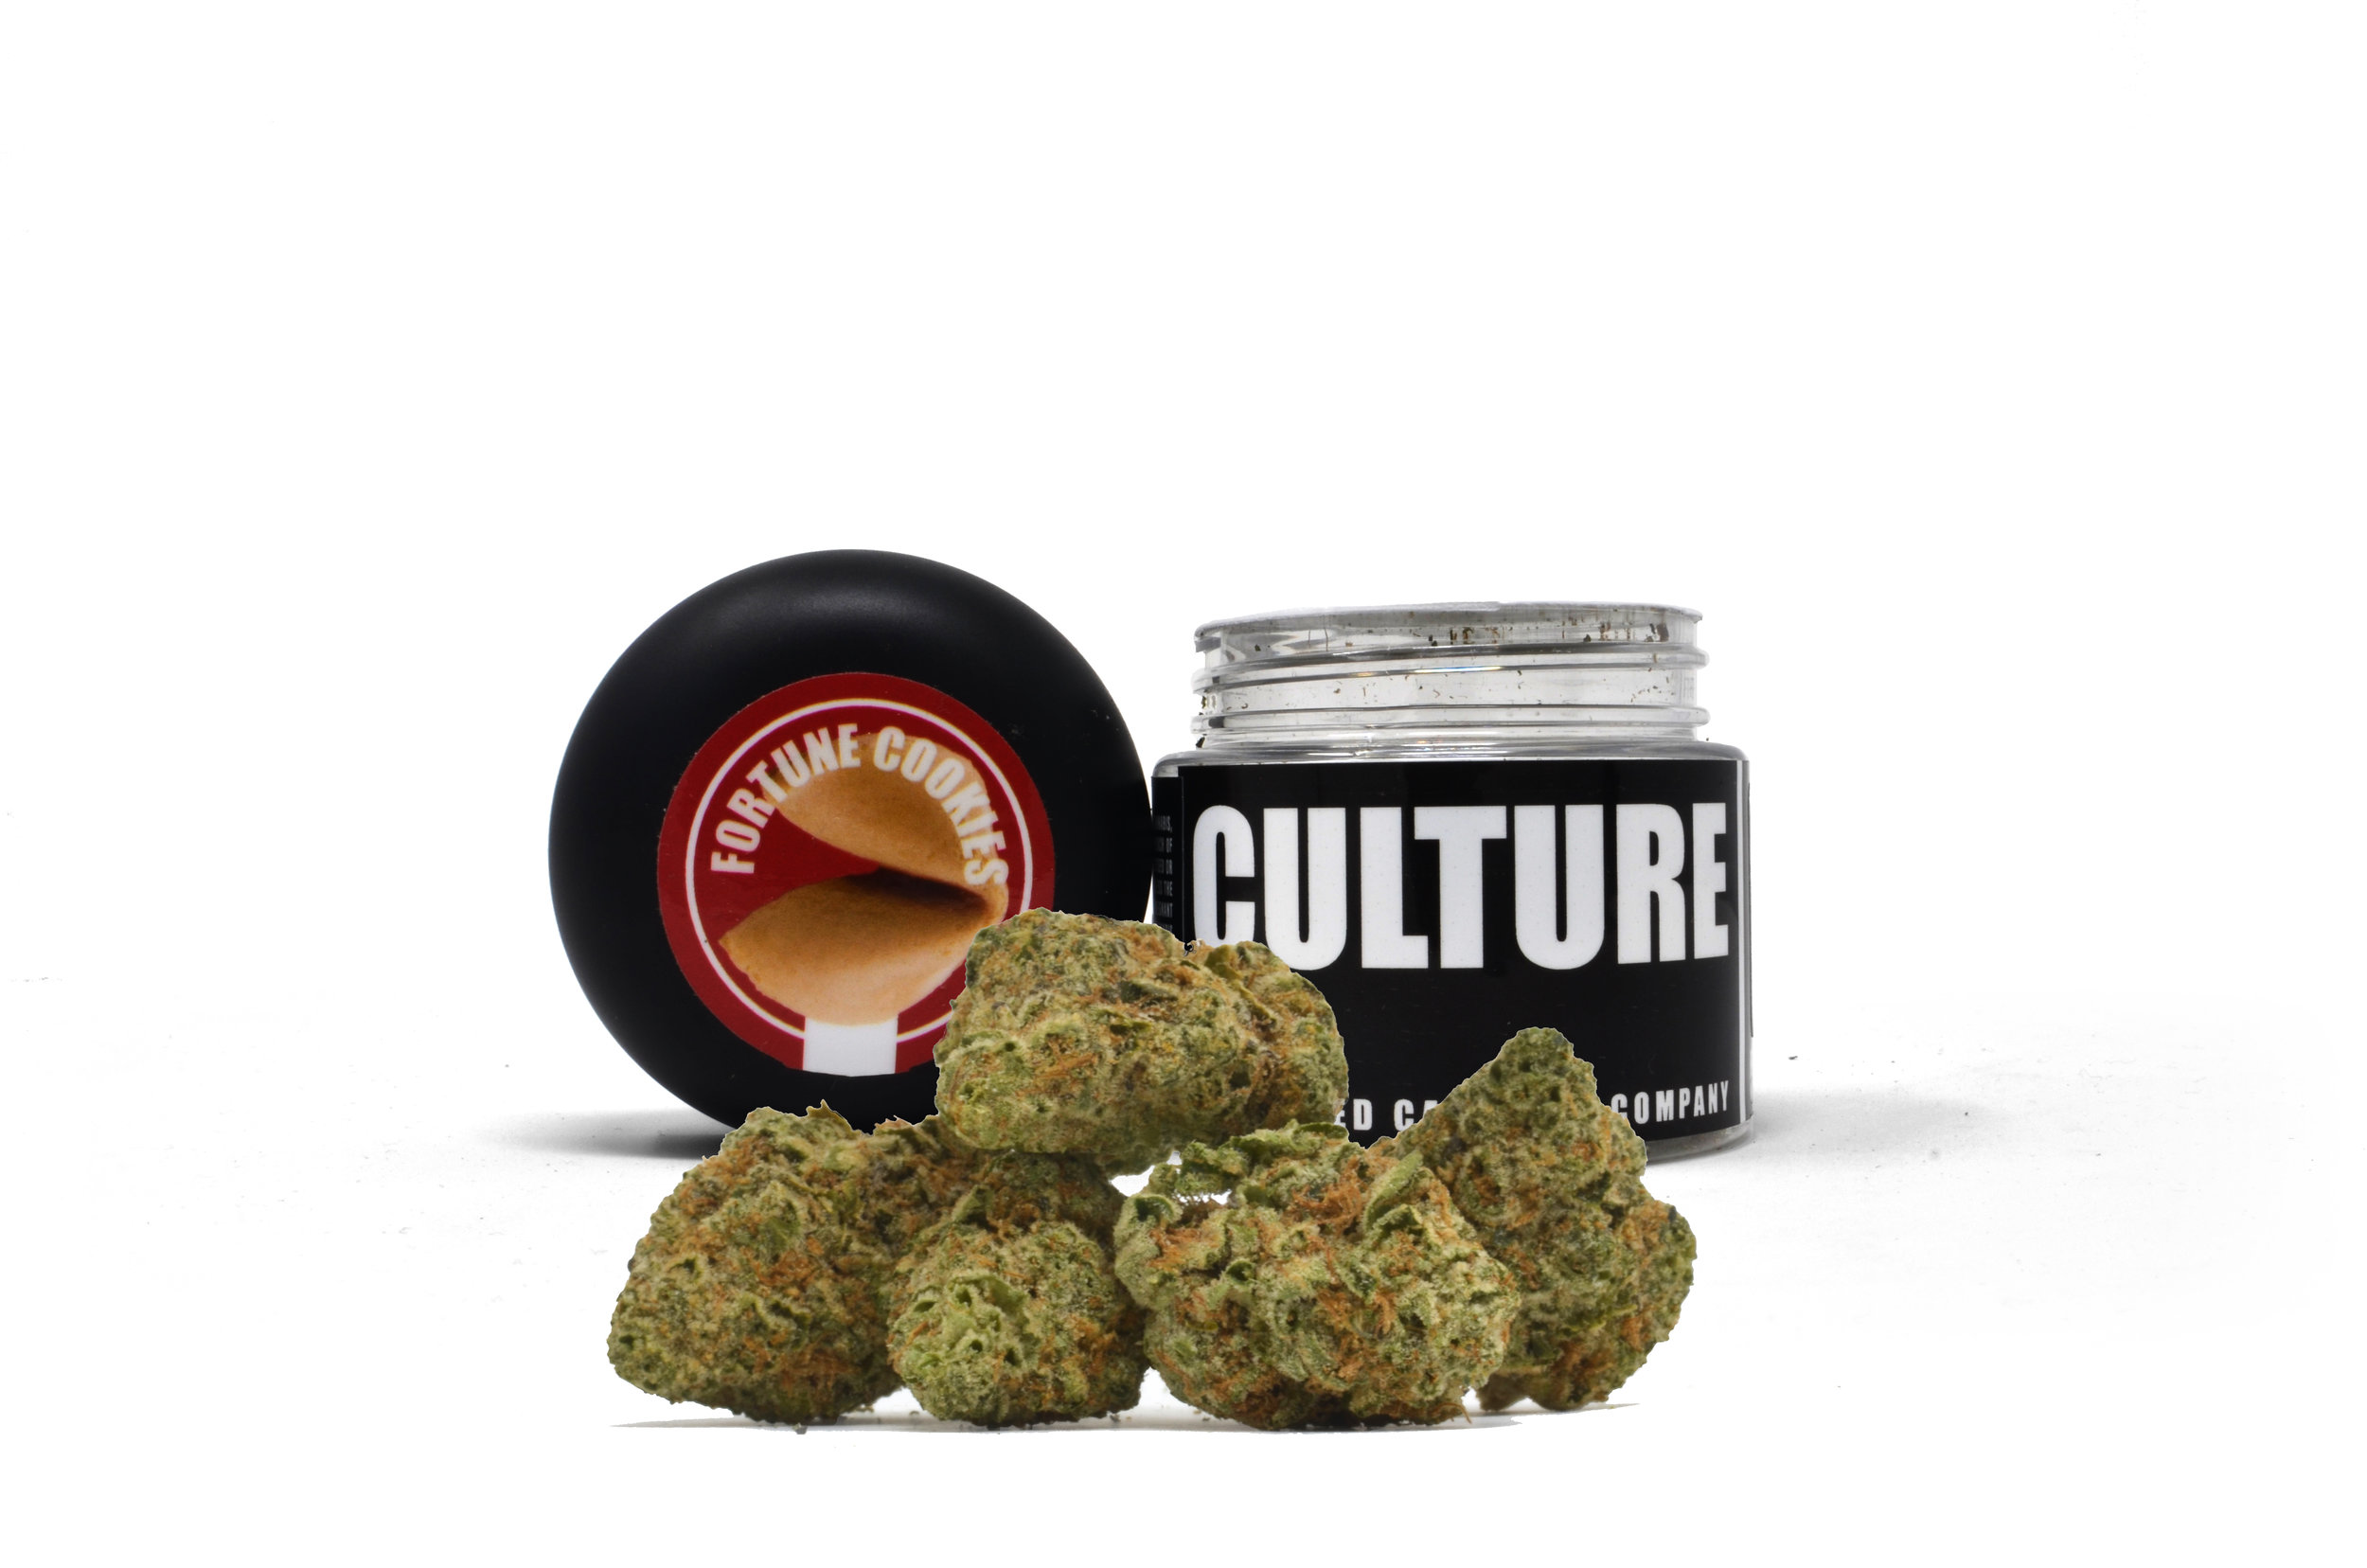 """Culture Fortune Cookies Indoor 3.5g    $50   Fortune Cookies is a hybrid cannabis strain that combines the famed genetics of Girl Scout Cookies and OG Kush in a potent mix of earthy, honeyed flavors. This hybrid can hit hard in larger doses, pushing past the confines of a subtle buzz into the weighty """"couch-lock"""" effects typically associated with indica strains."""